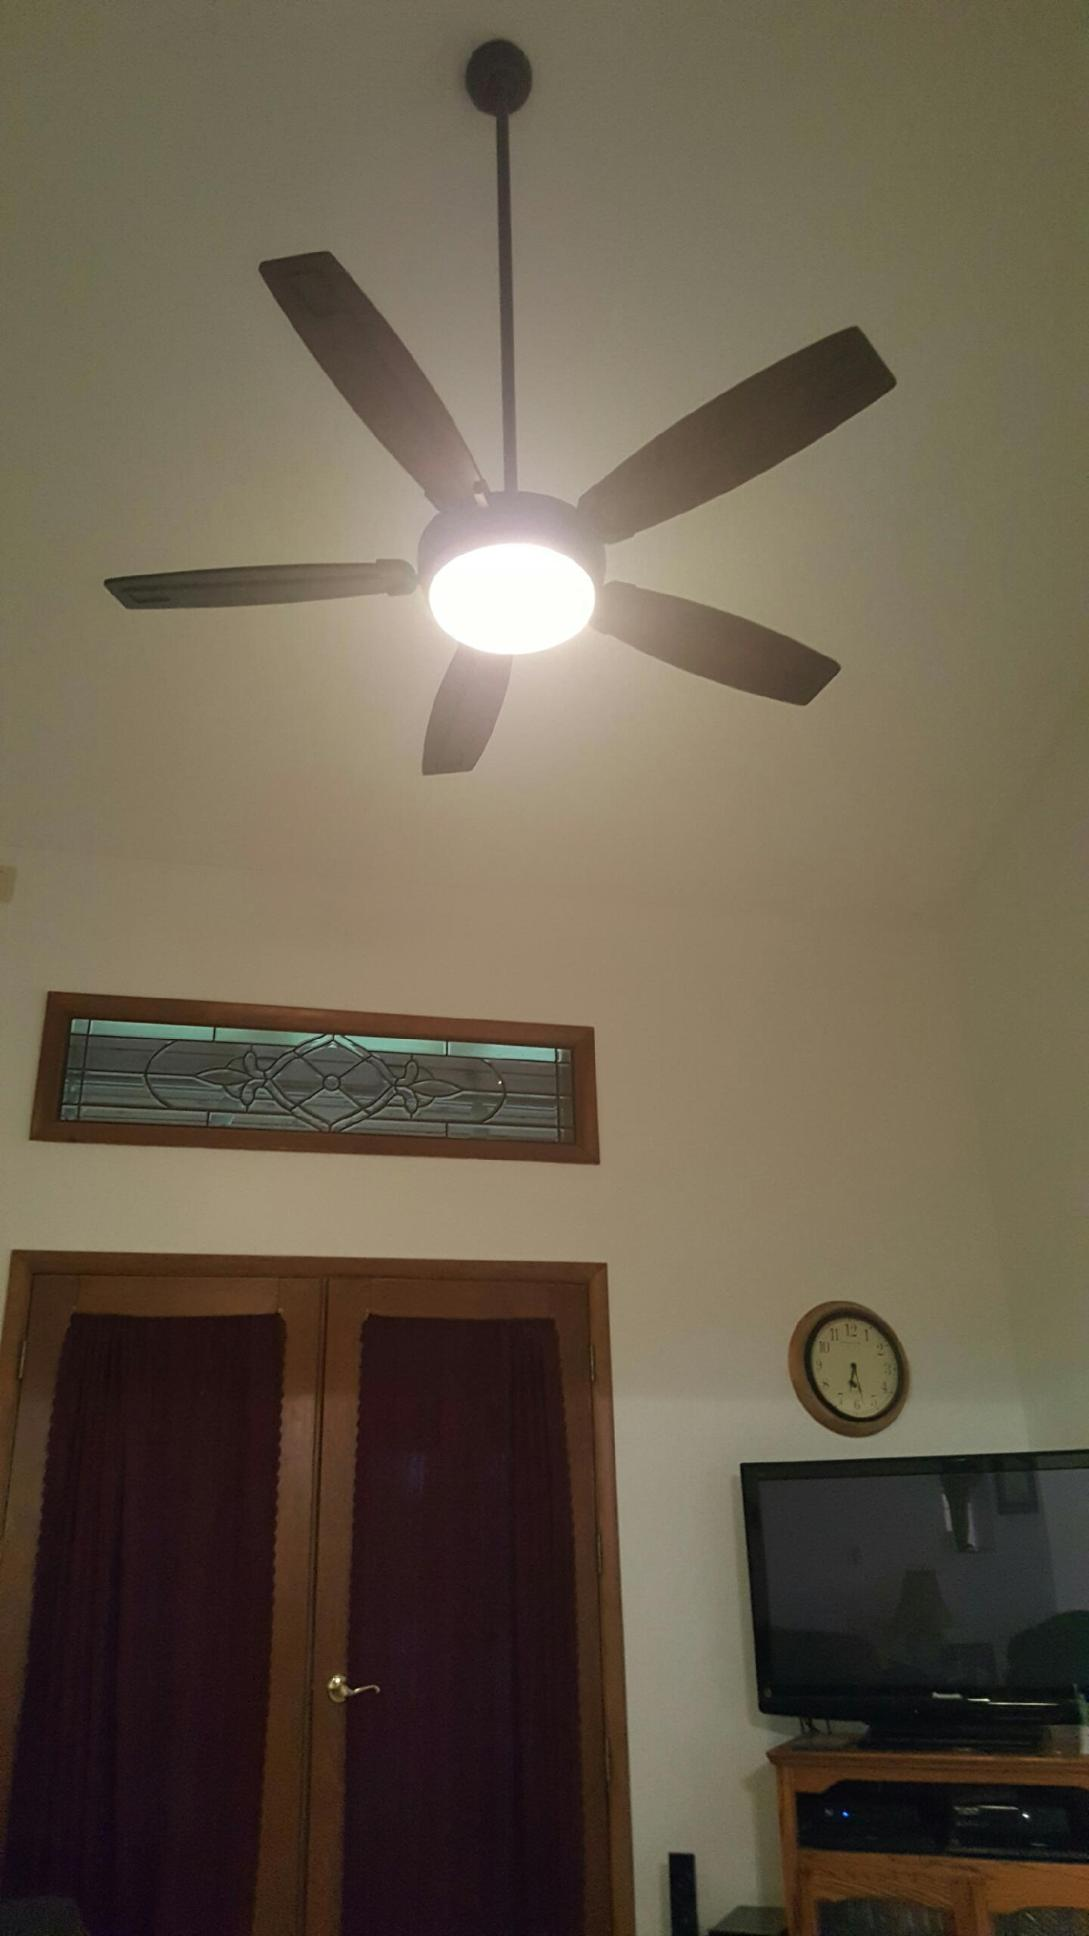 Ceiling fans a brief history and why we love them ceiling fans aloadofball Images